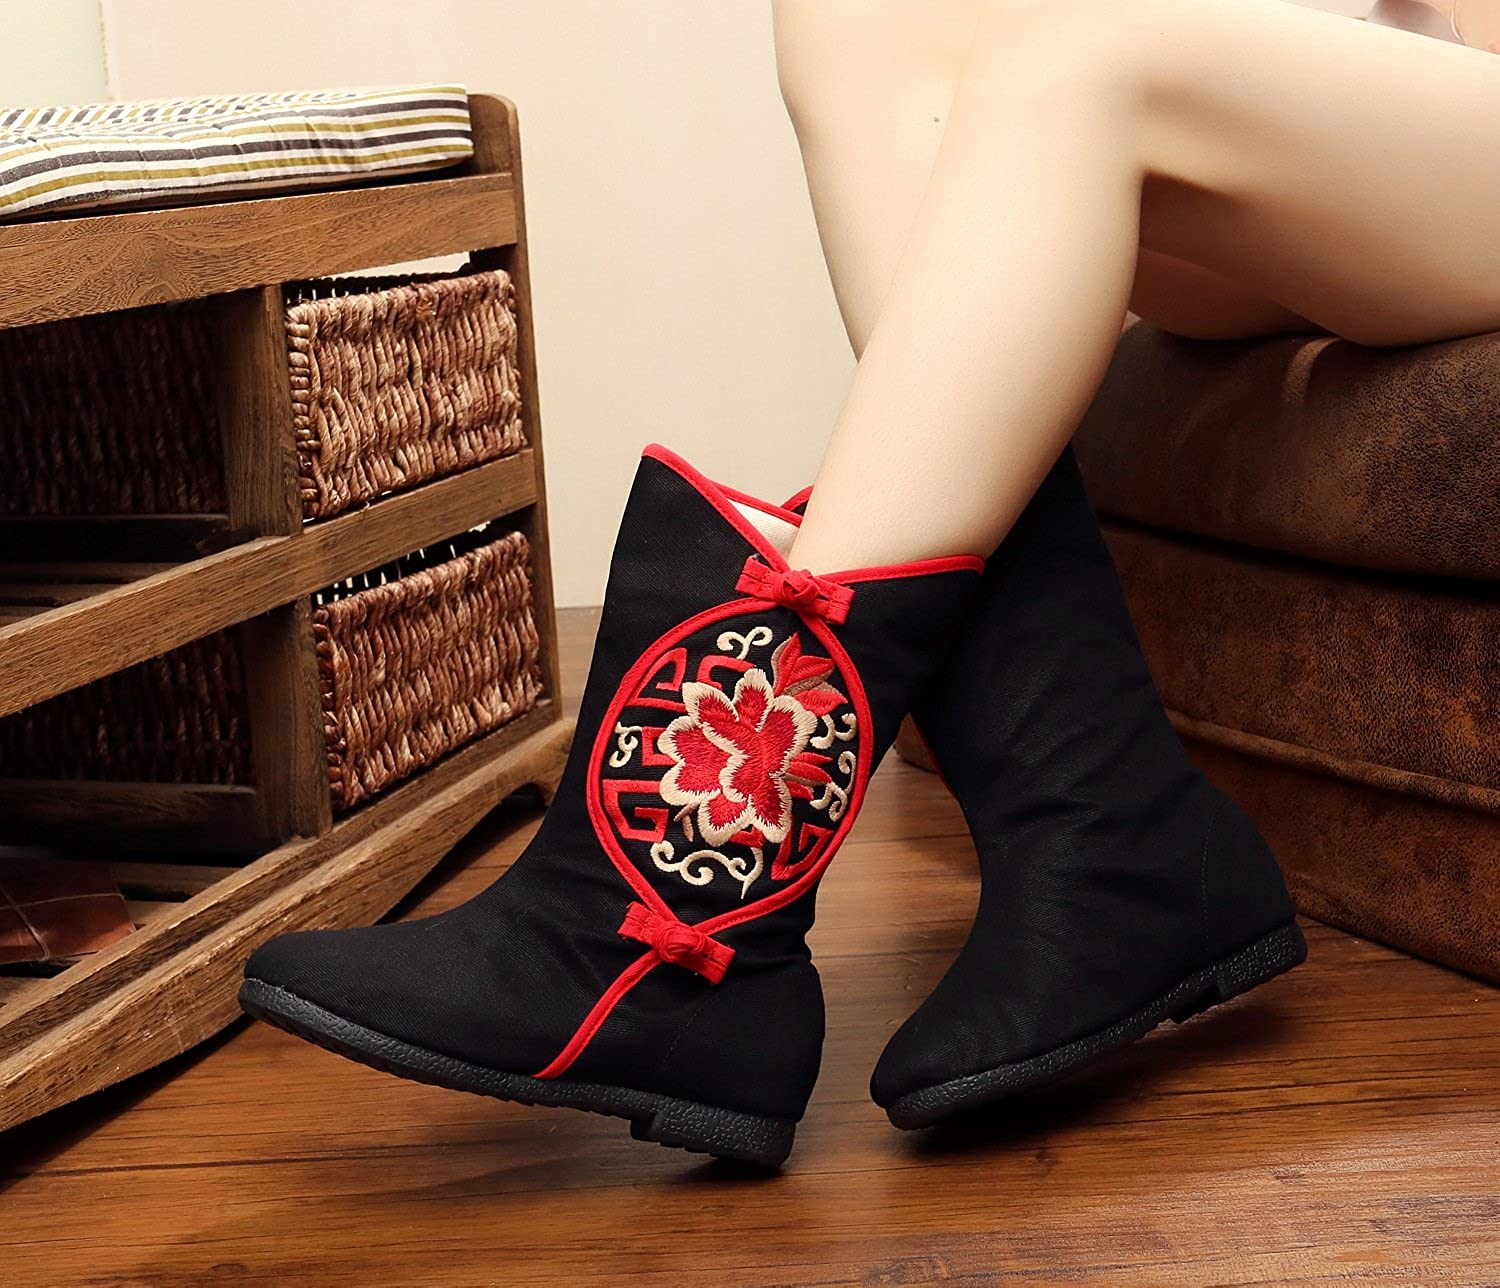 Qhome Womens Retro Paper-Cut Peony Embroidery Sports Fashion Add Wool Warm Ankle Boots Canvas Shoes Black